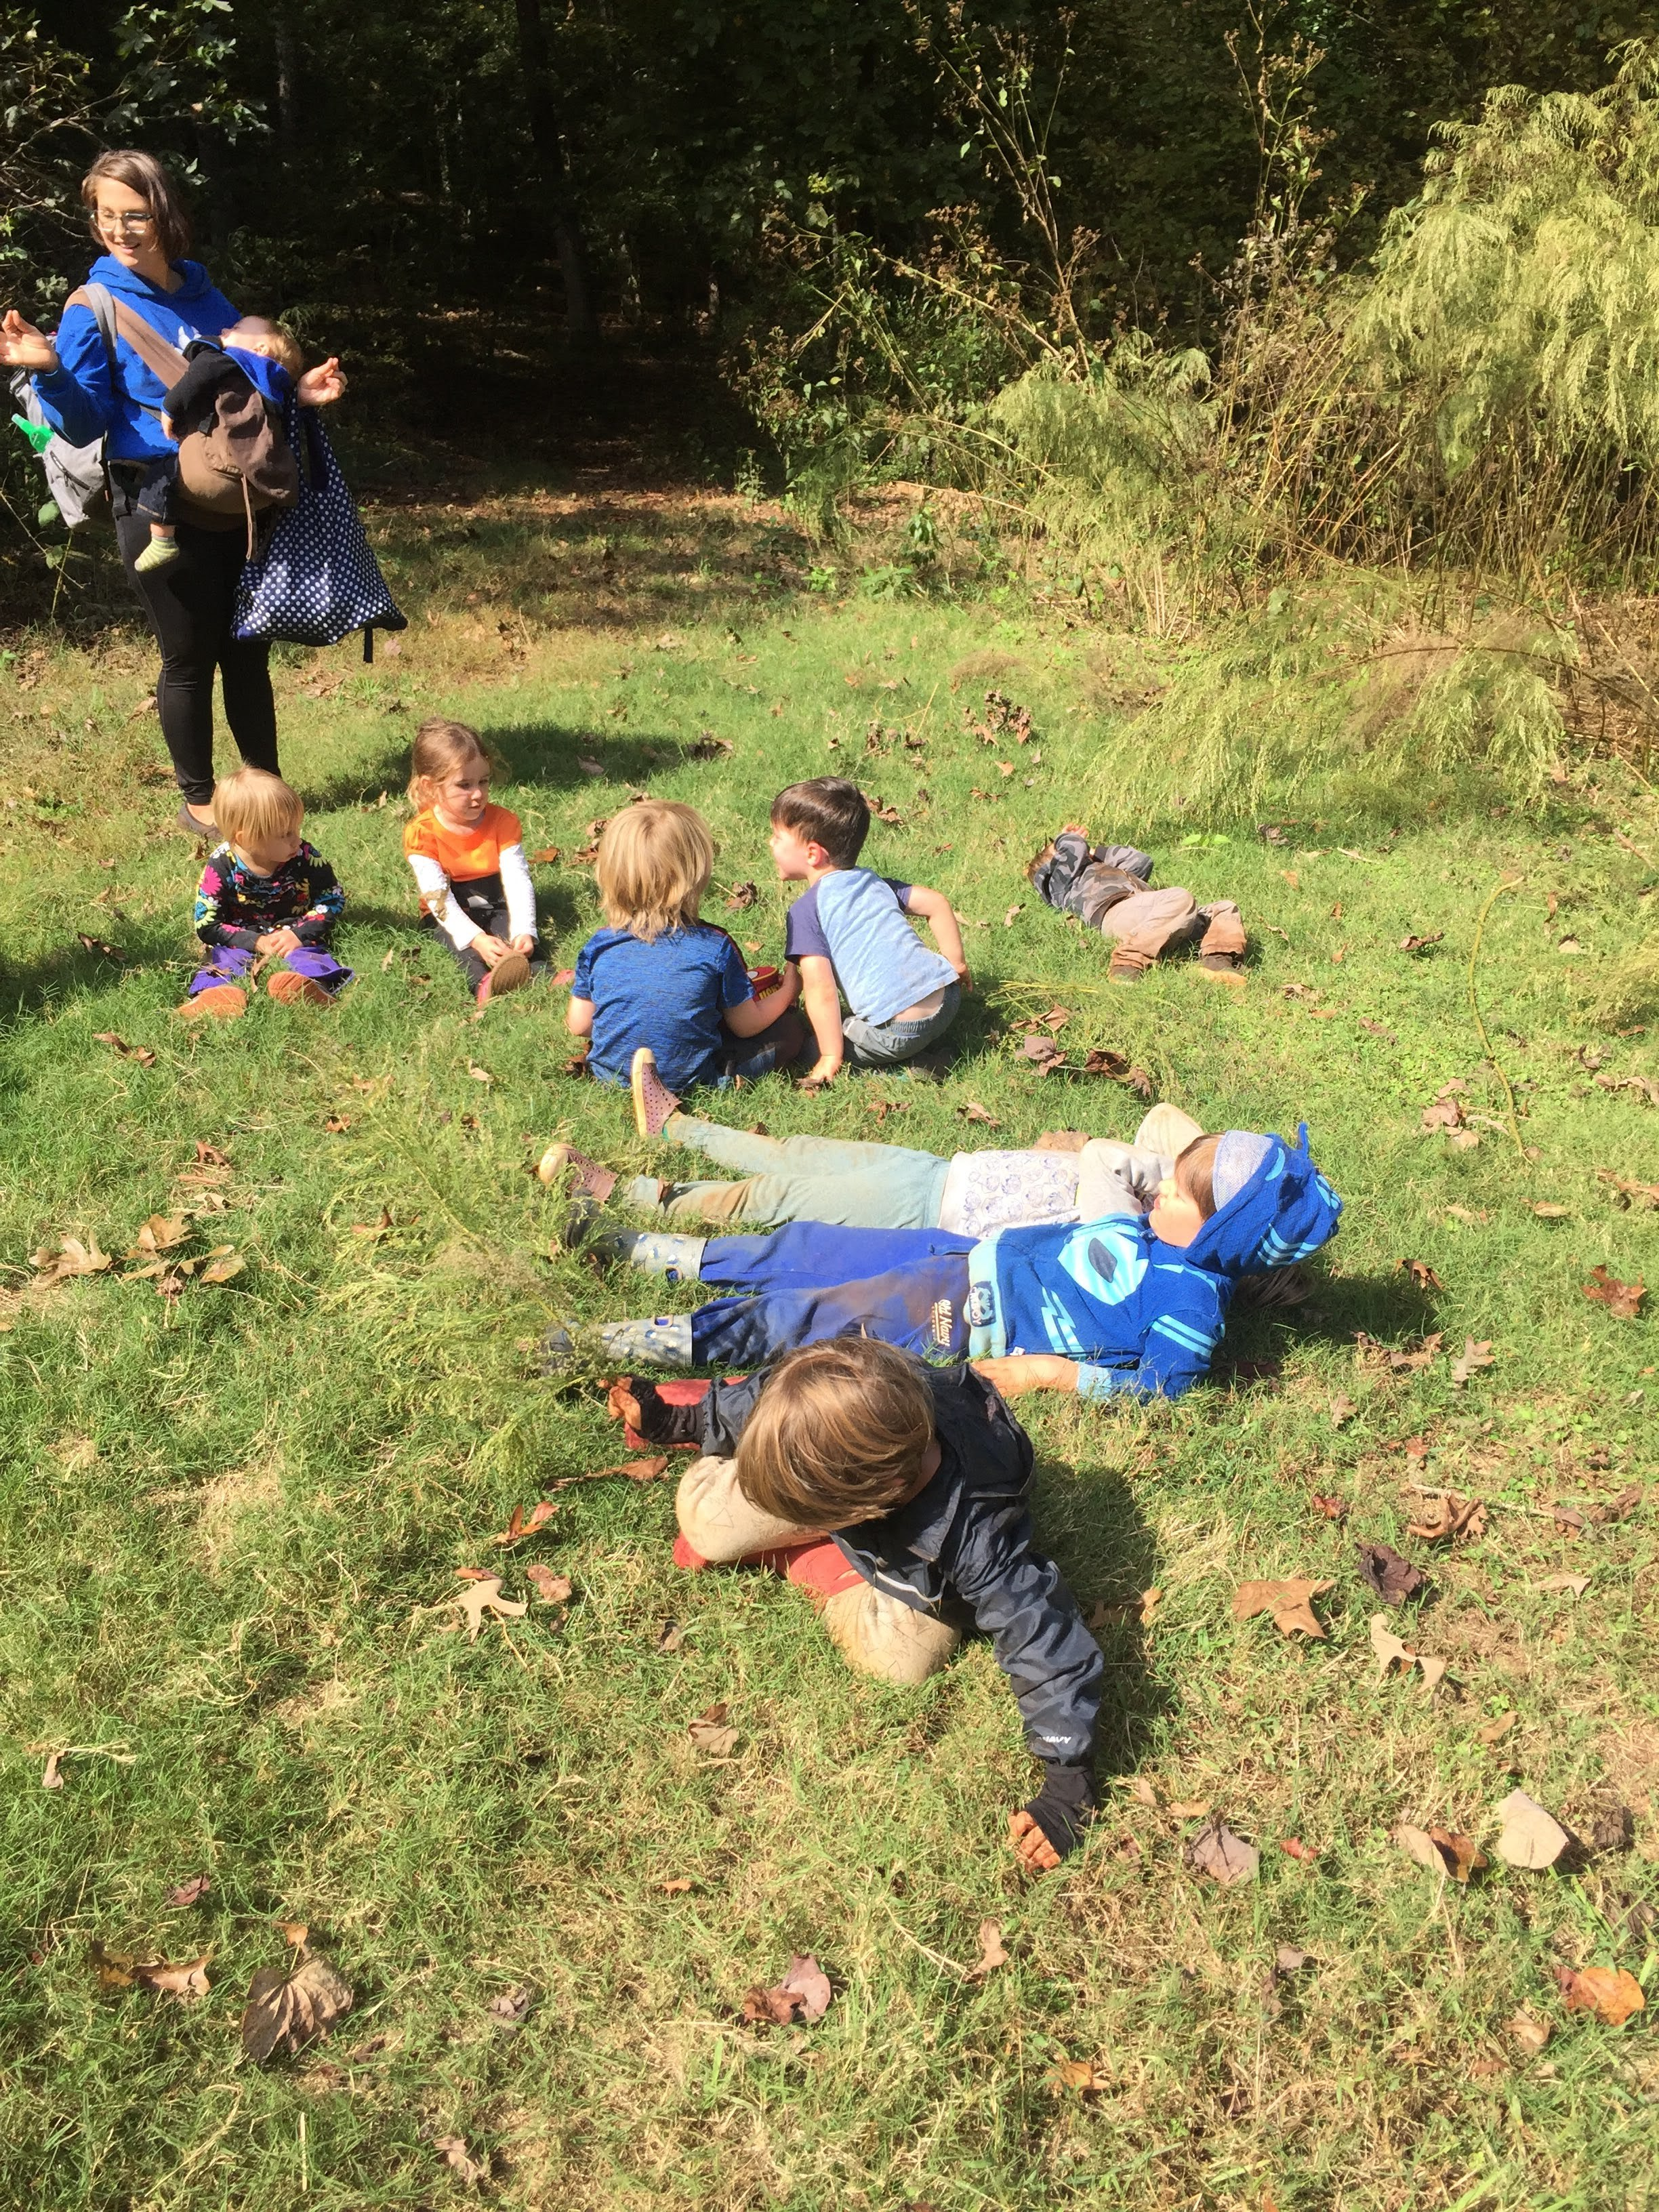 """A beautiful impromptu moment with the children """"charging their batteries"""" in the sun. As we left the shady cool forest and found the meadow bathed in sunlight, they all spontaneously dropped to the ground and lolled, took yoga poses, rolled, and sprawled in the warmth."""